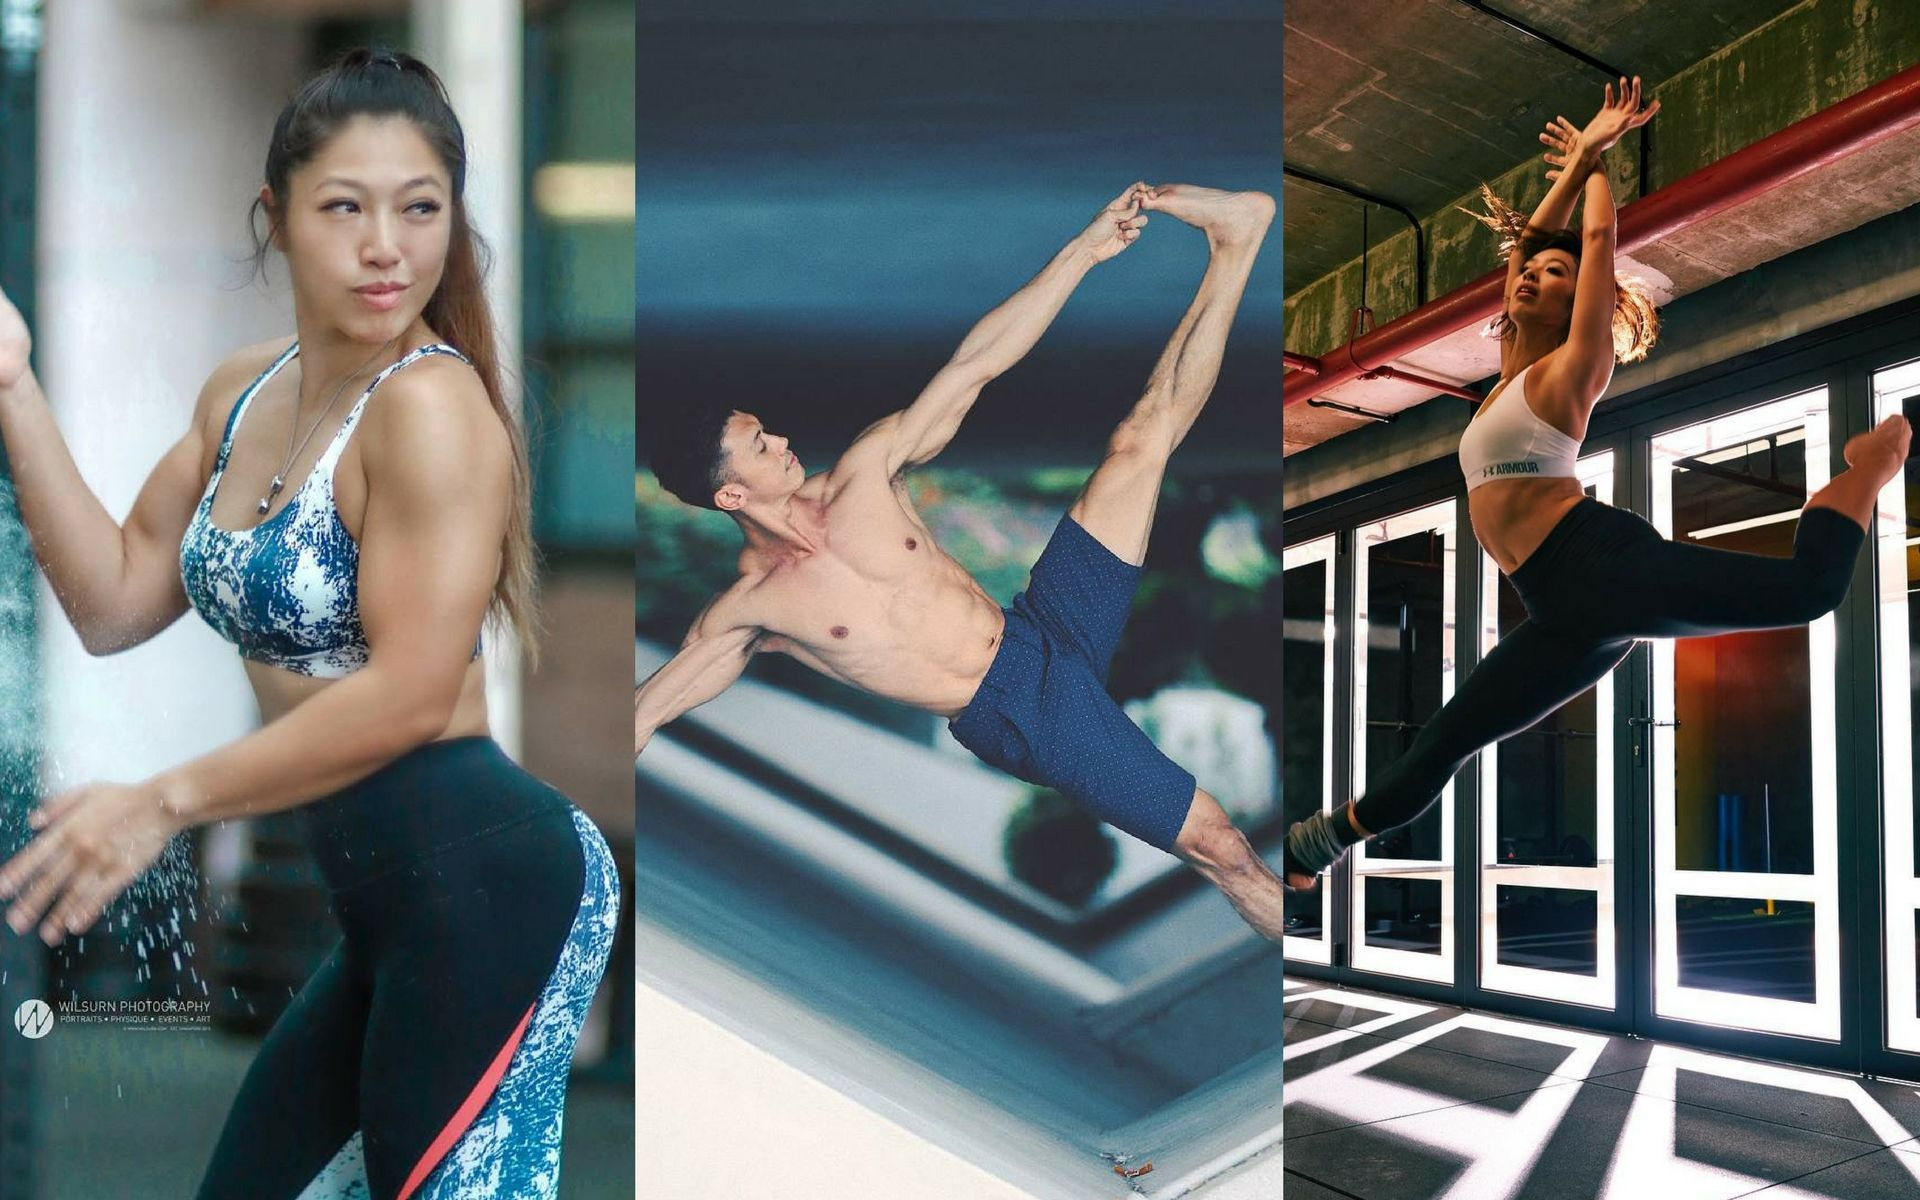 7 Malaysian Fitness Influencers For When You Need To Lose The Festive Kilos